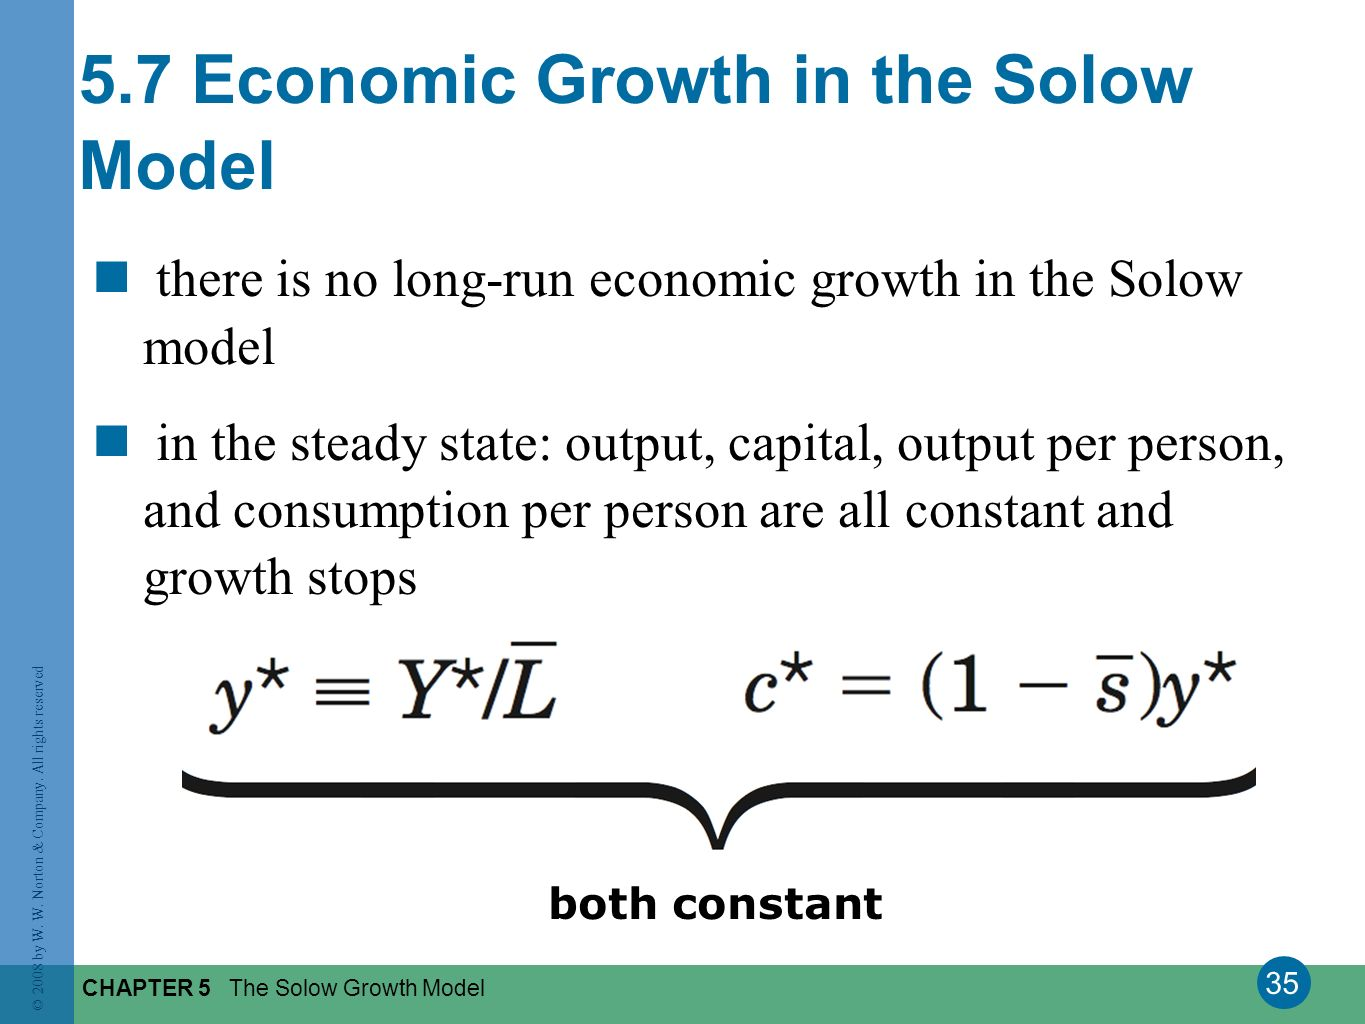 5.7 Economic Growth in the Solow Model